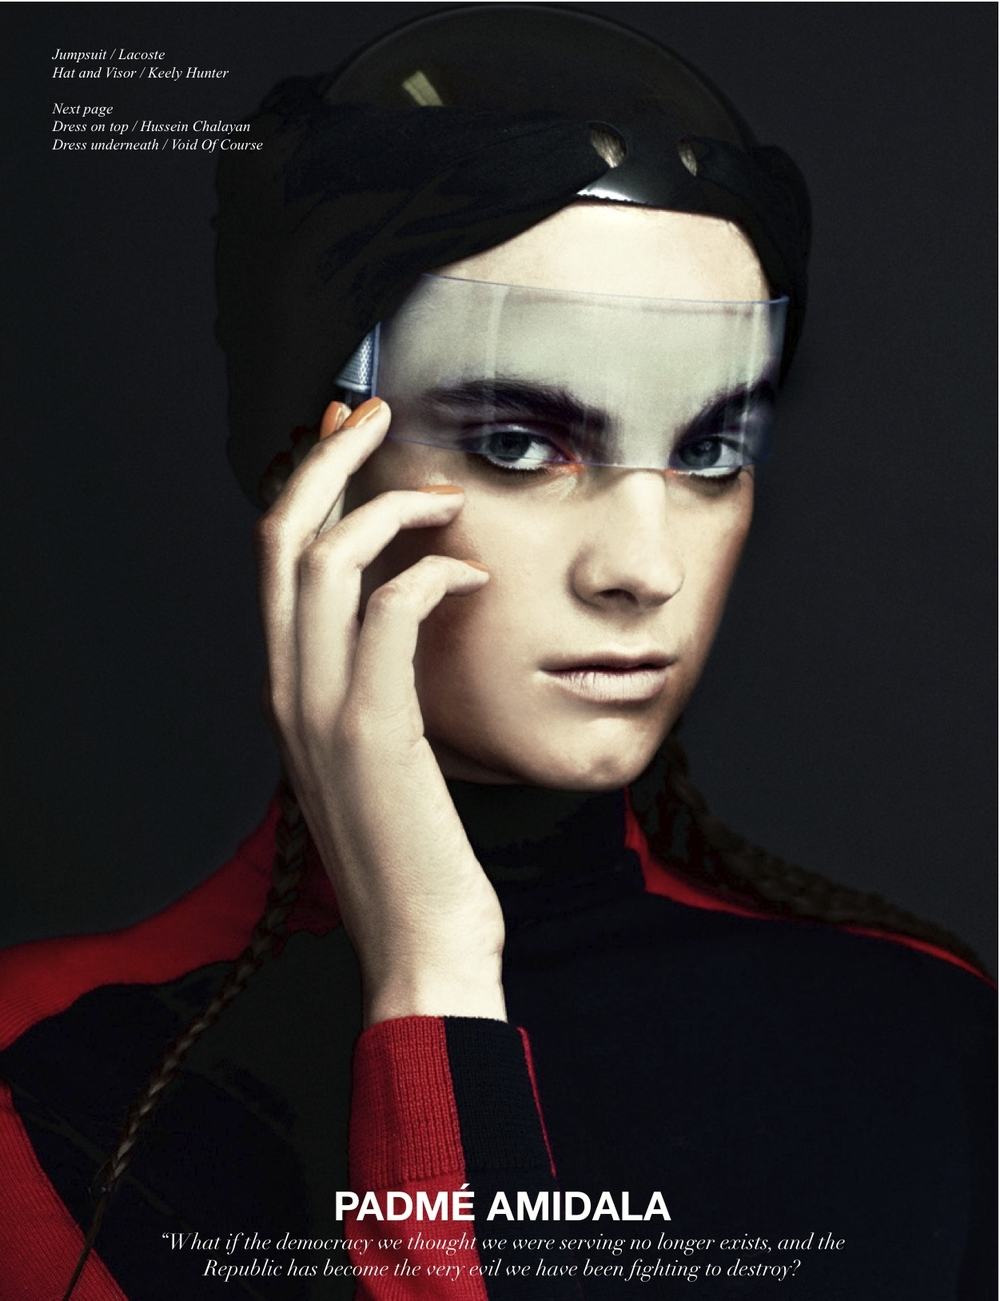 Black Turban & Blue UV Headband (worn as visor) - Schon Magazine (Styled by Anna Trevelyan)